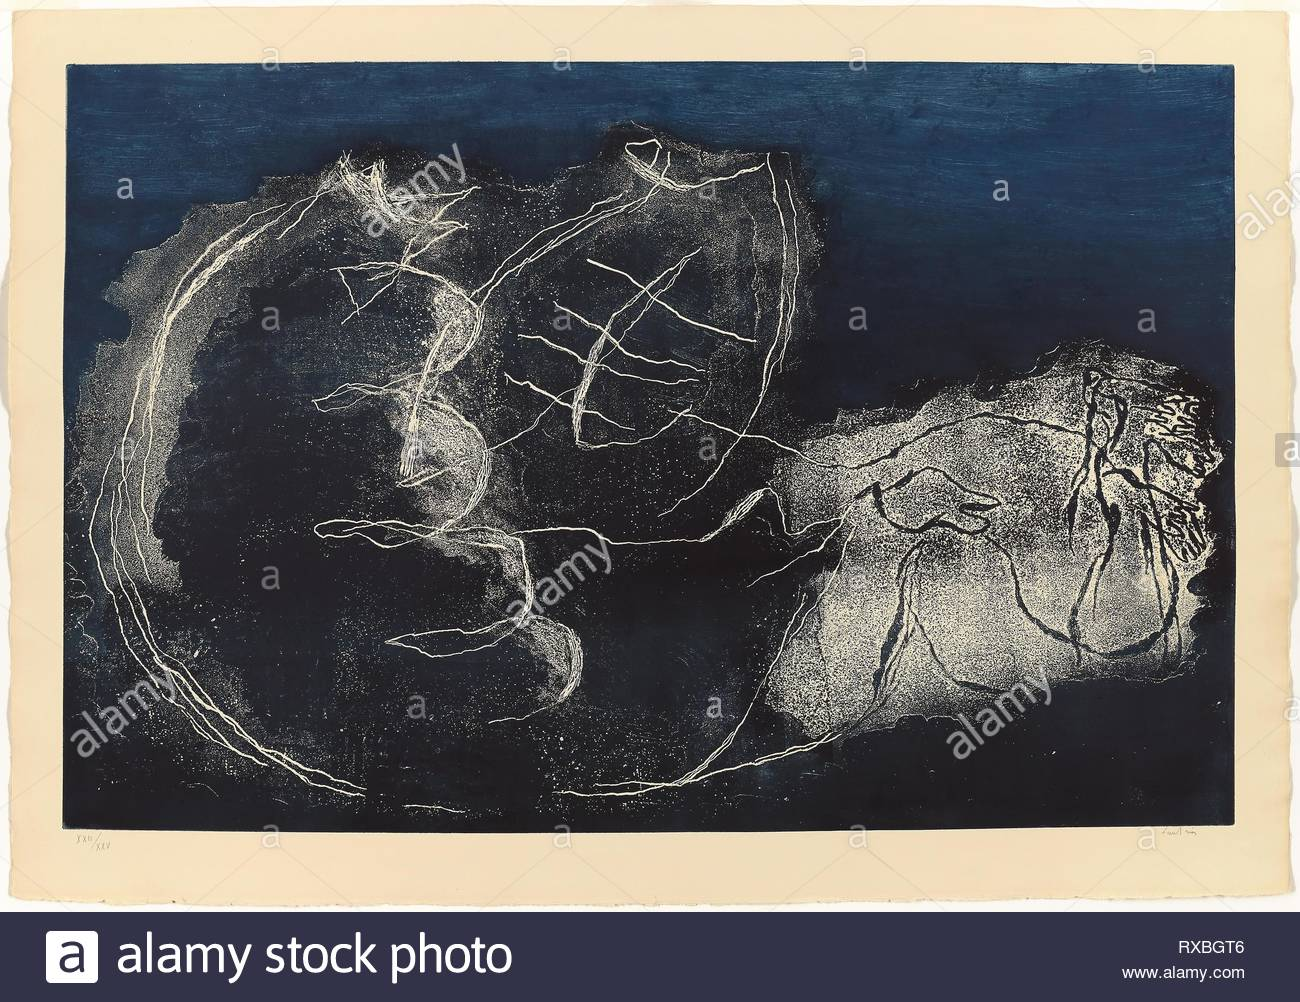 Woman in the Night. Jean Fautrier; French, 1898-1964. Date: 1947. Dimensions: 545 × 833 mm (plate); 635 × 910 mm (sheet). Etching and aquatint with monotype inking on cream wove paper. Origin: France. Museum: The Chicago Art Institute. - Stock Image